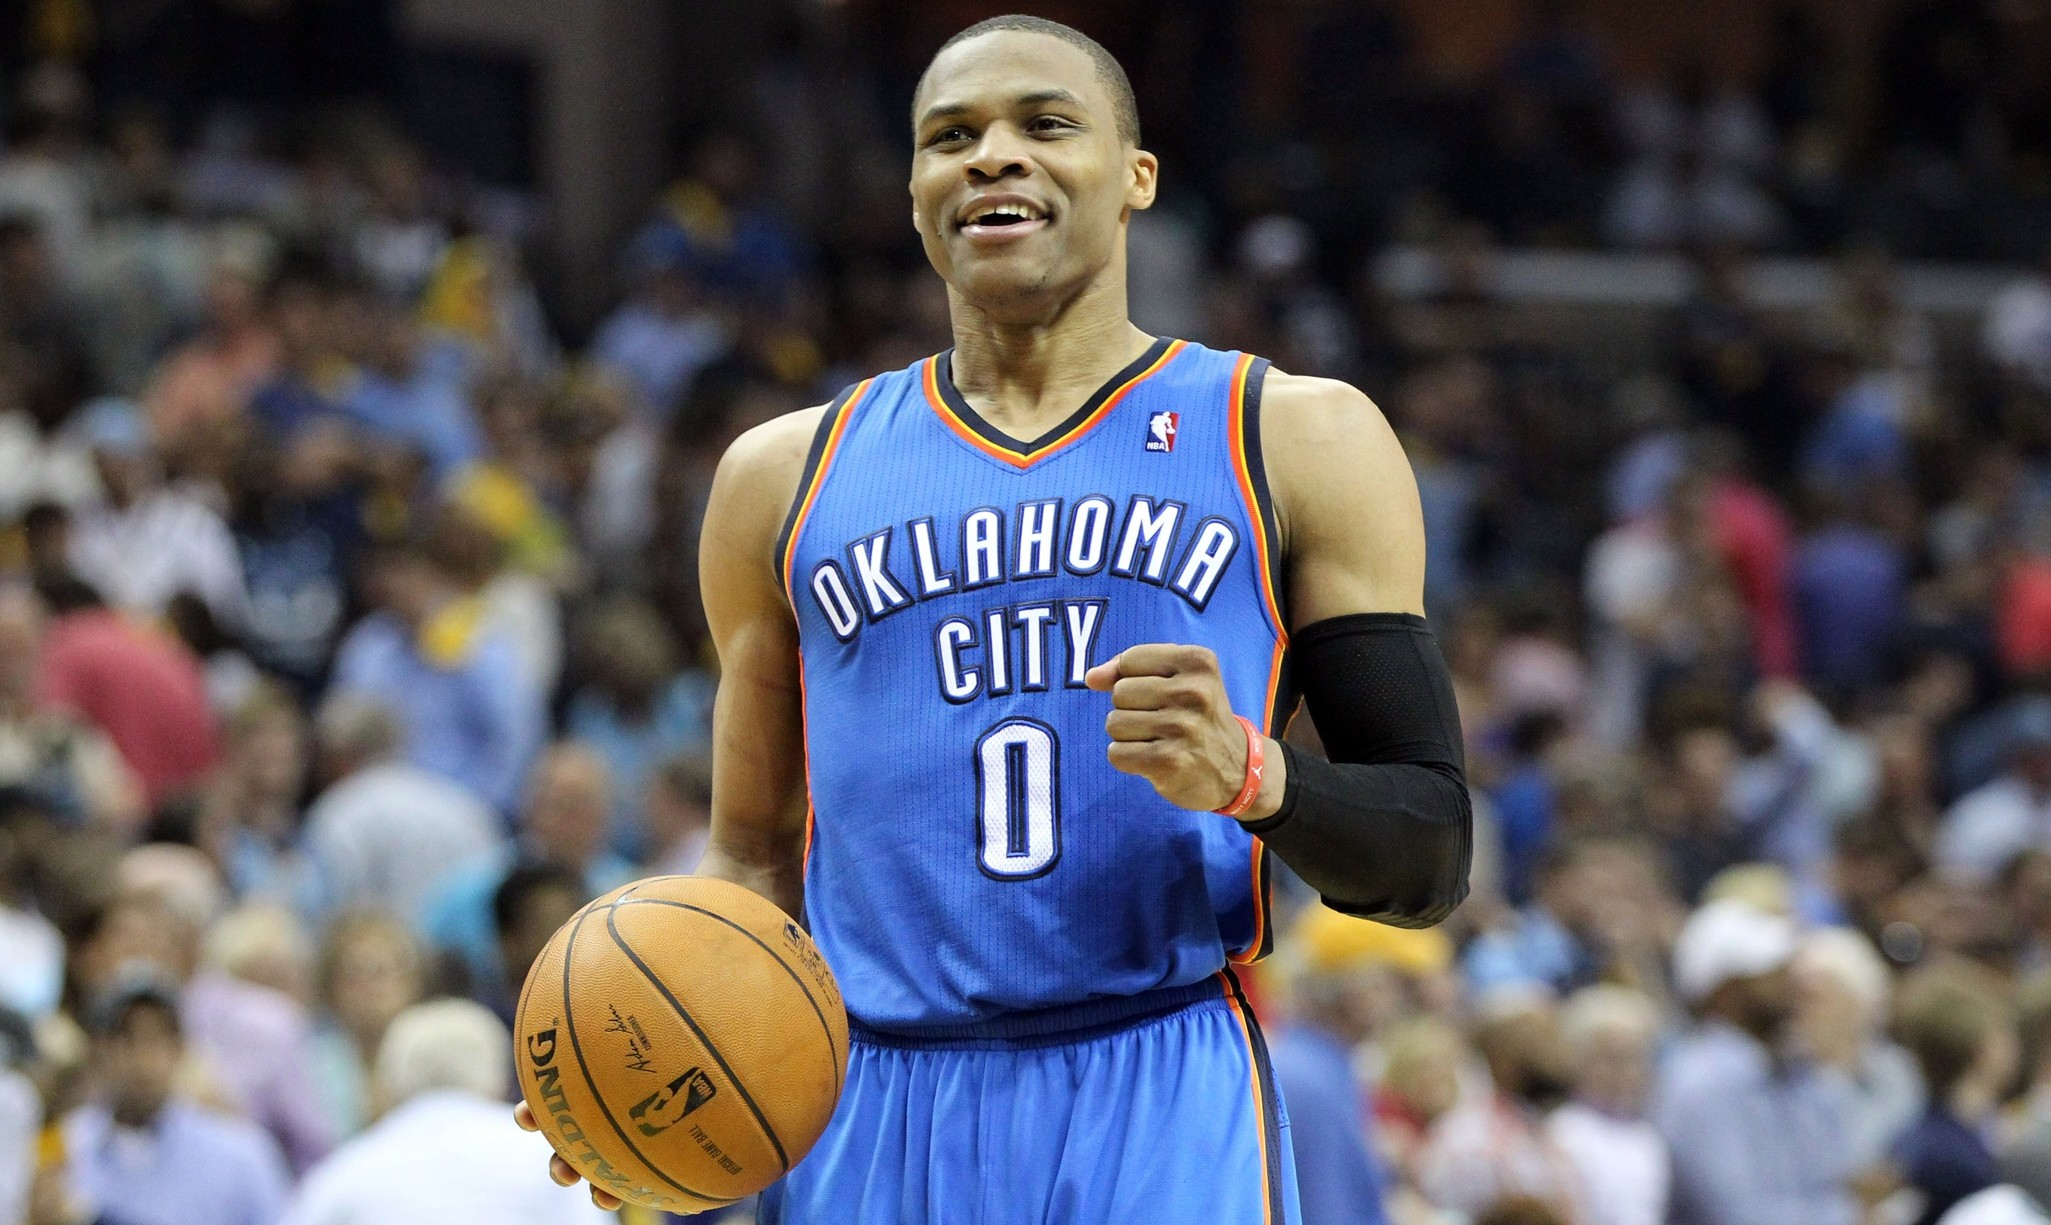 Russell Westbrook Wallpapers High Resolution And Quality Download